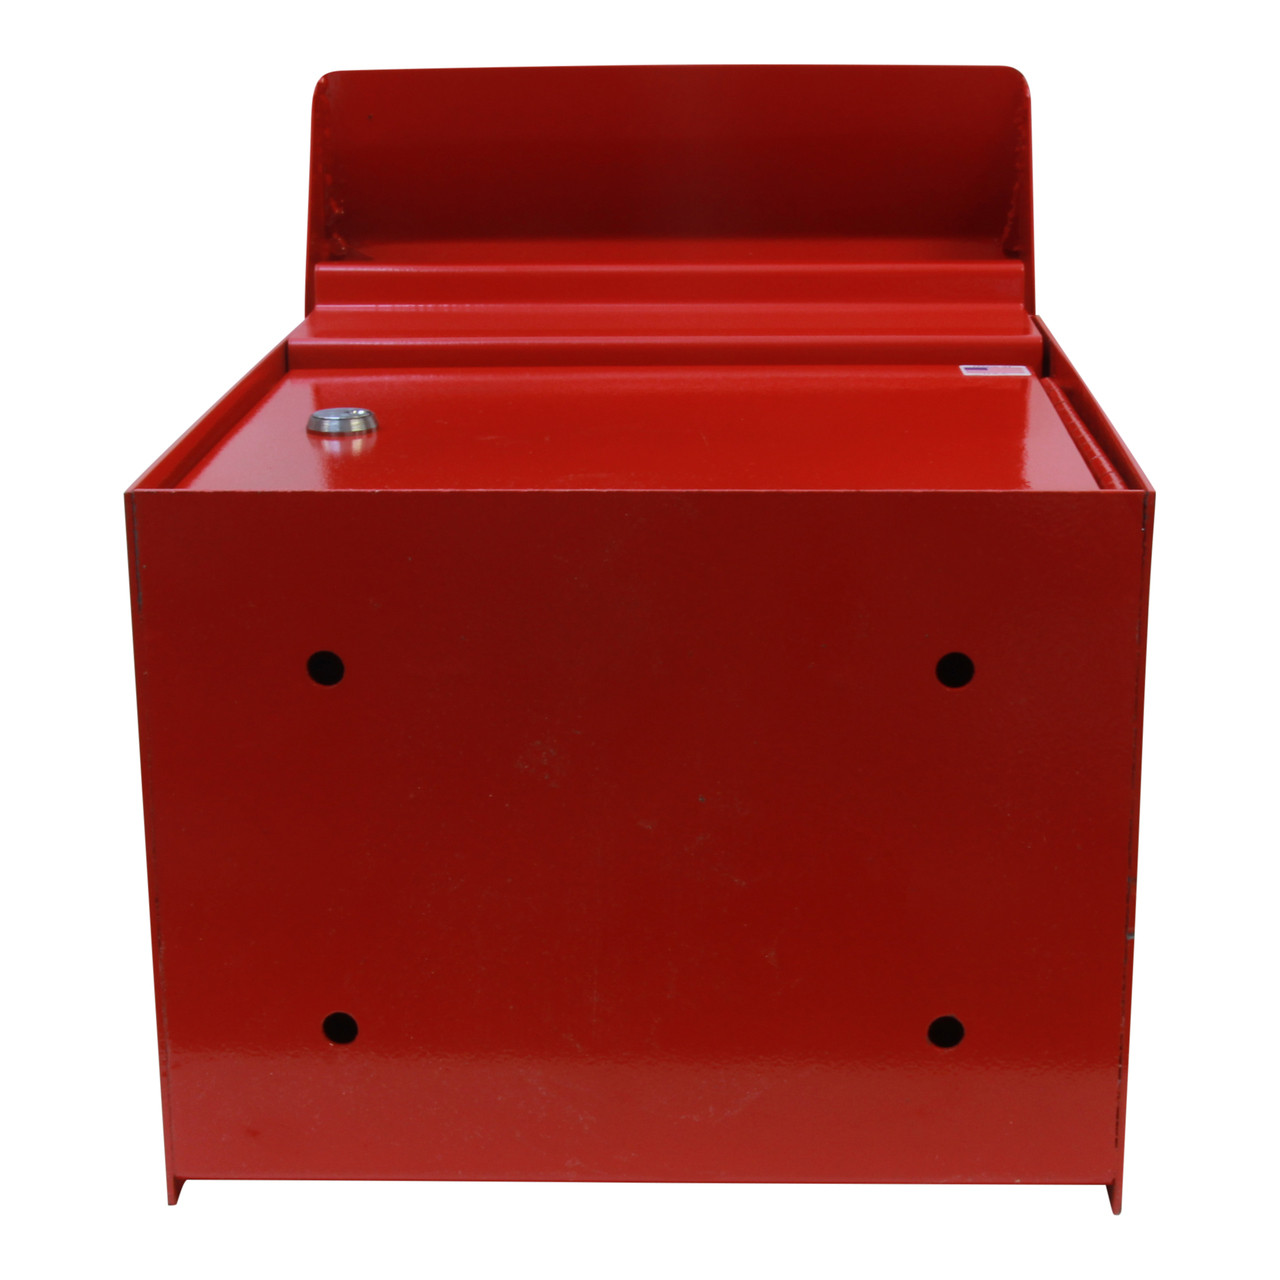 Large Outdoor Secure Payment Locking Drop Box  showing mounting holes